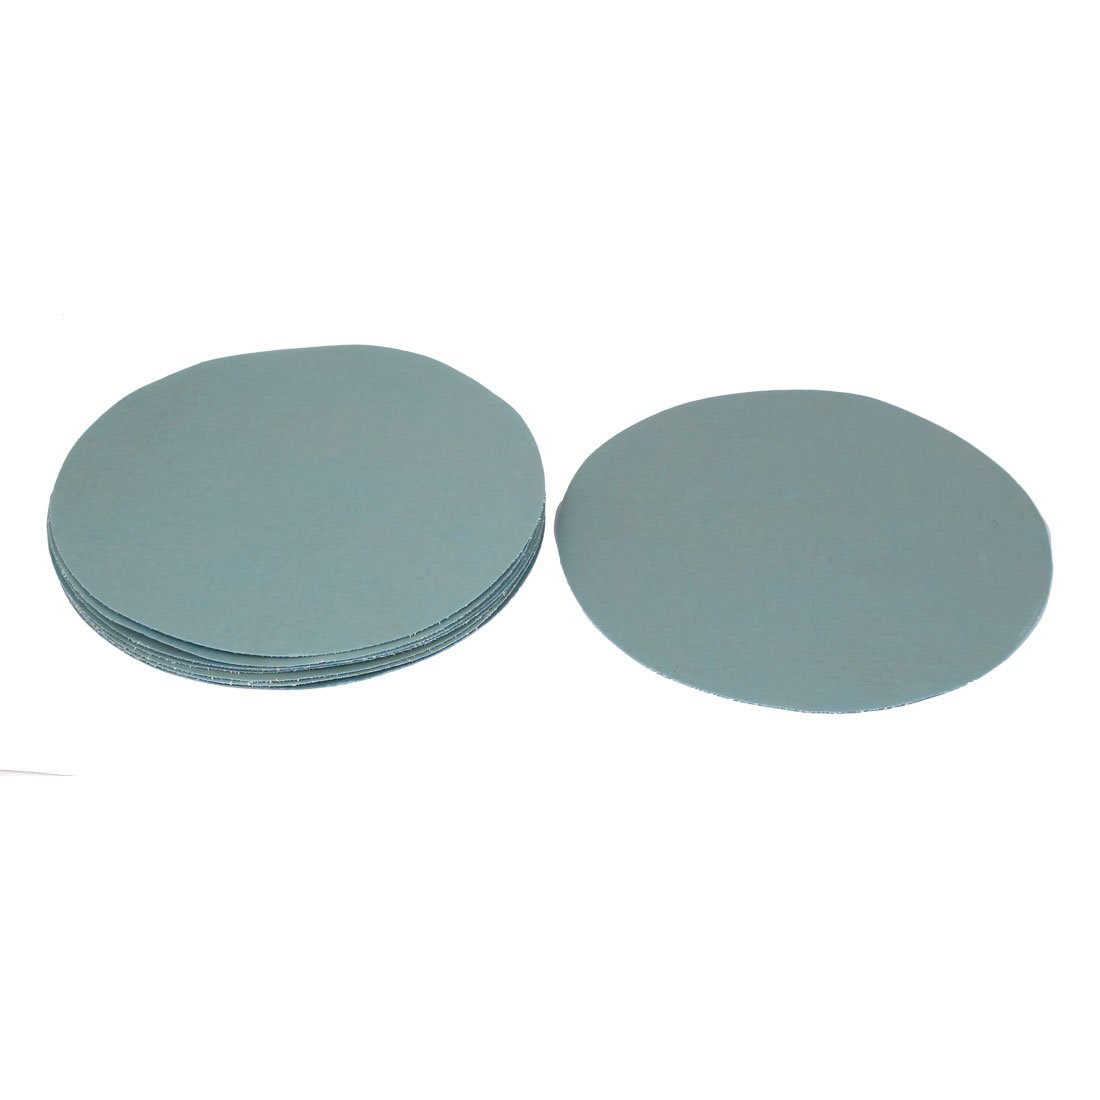 uxcell 7inch Dia Silicone Carbide 5000 Grit Polishing Sand Paper 10pcs